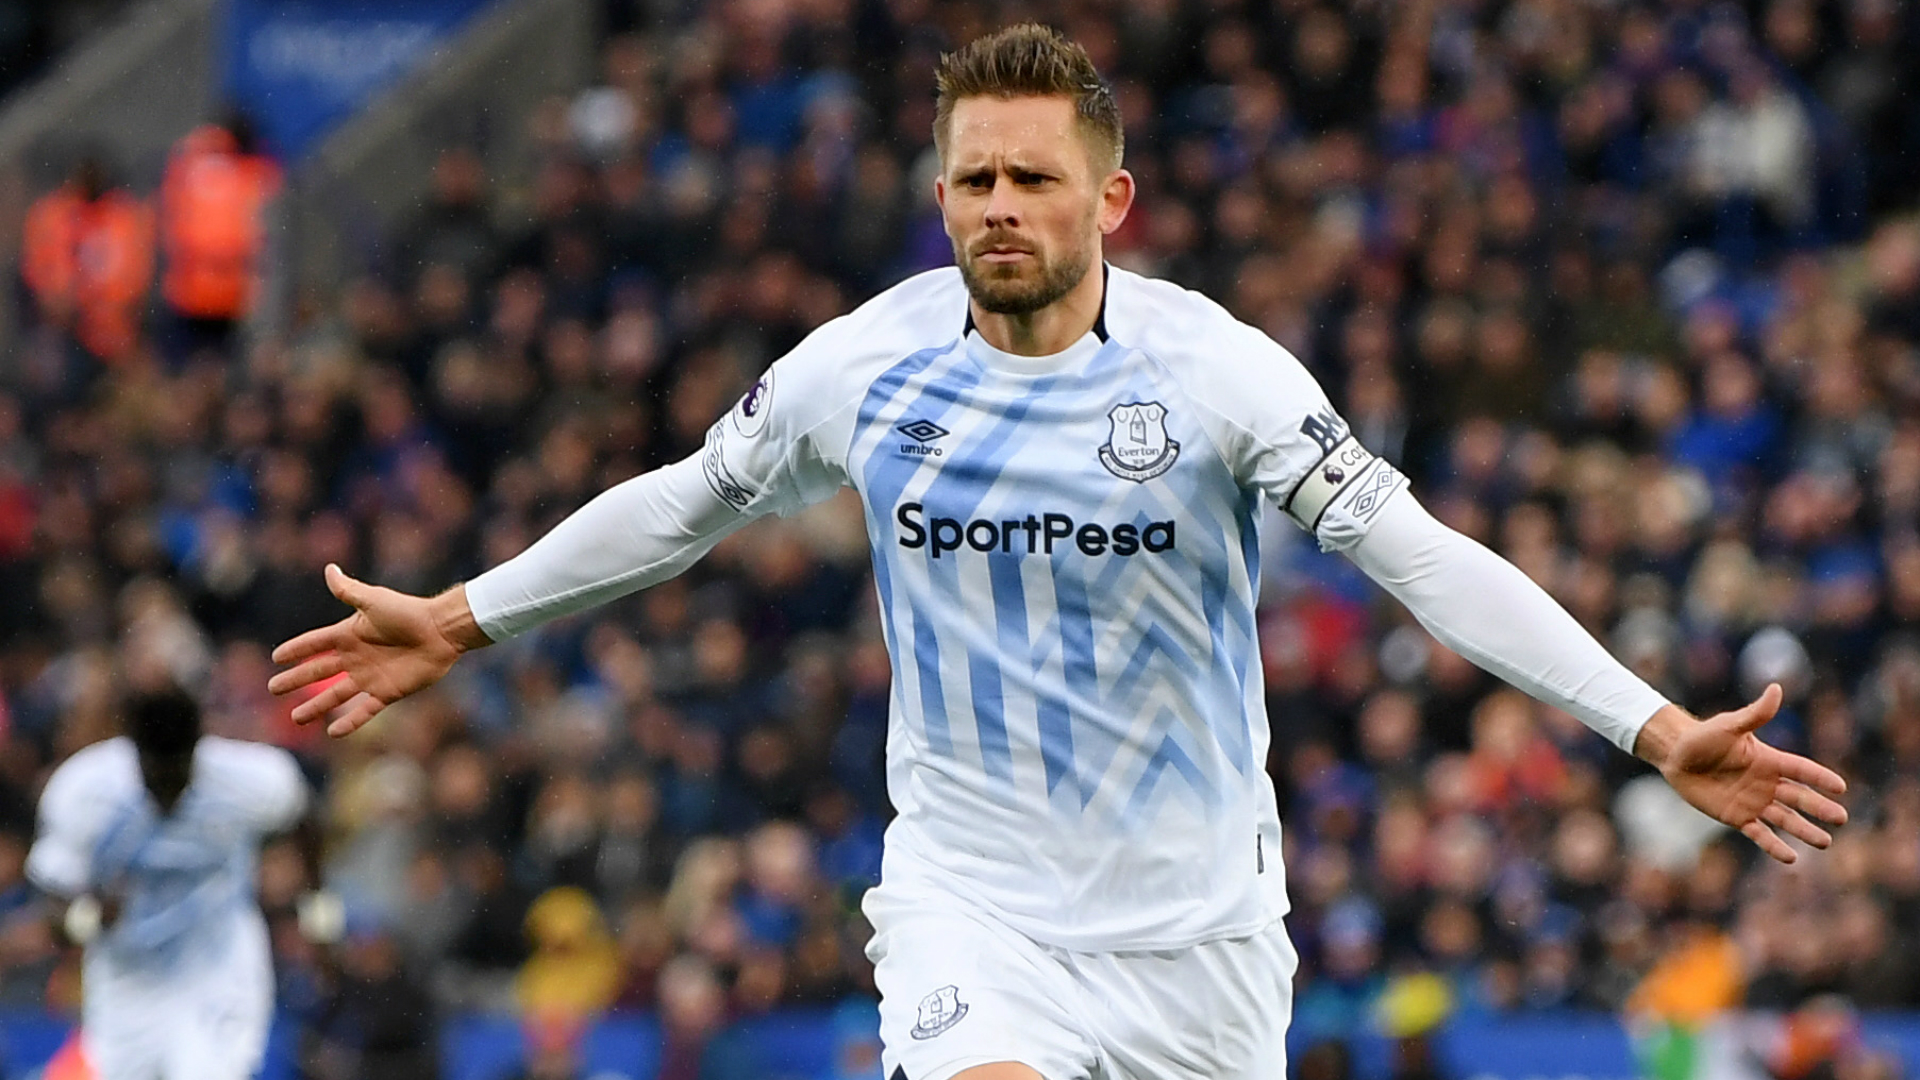 Everton win at Leicester thanks to Sigurdsson stunner